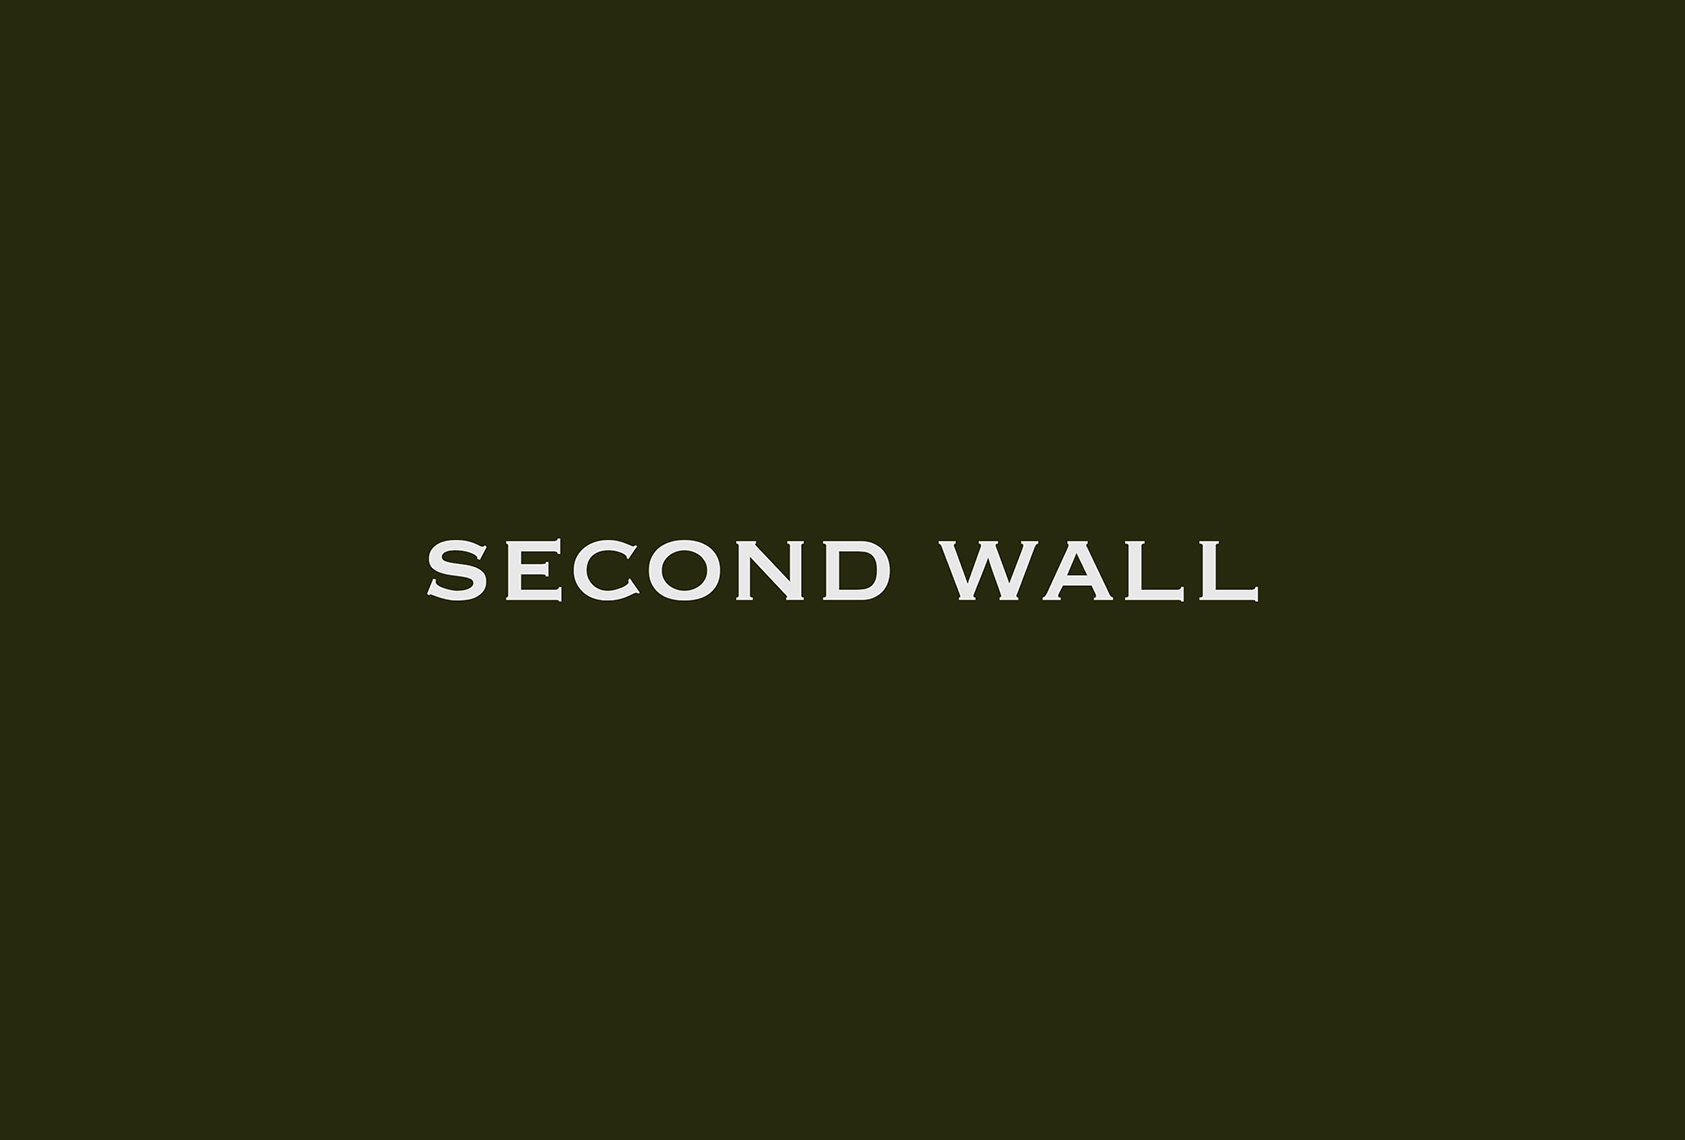 second wall_green